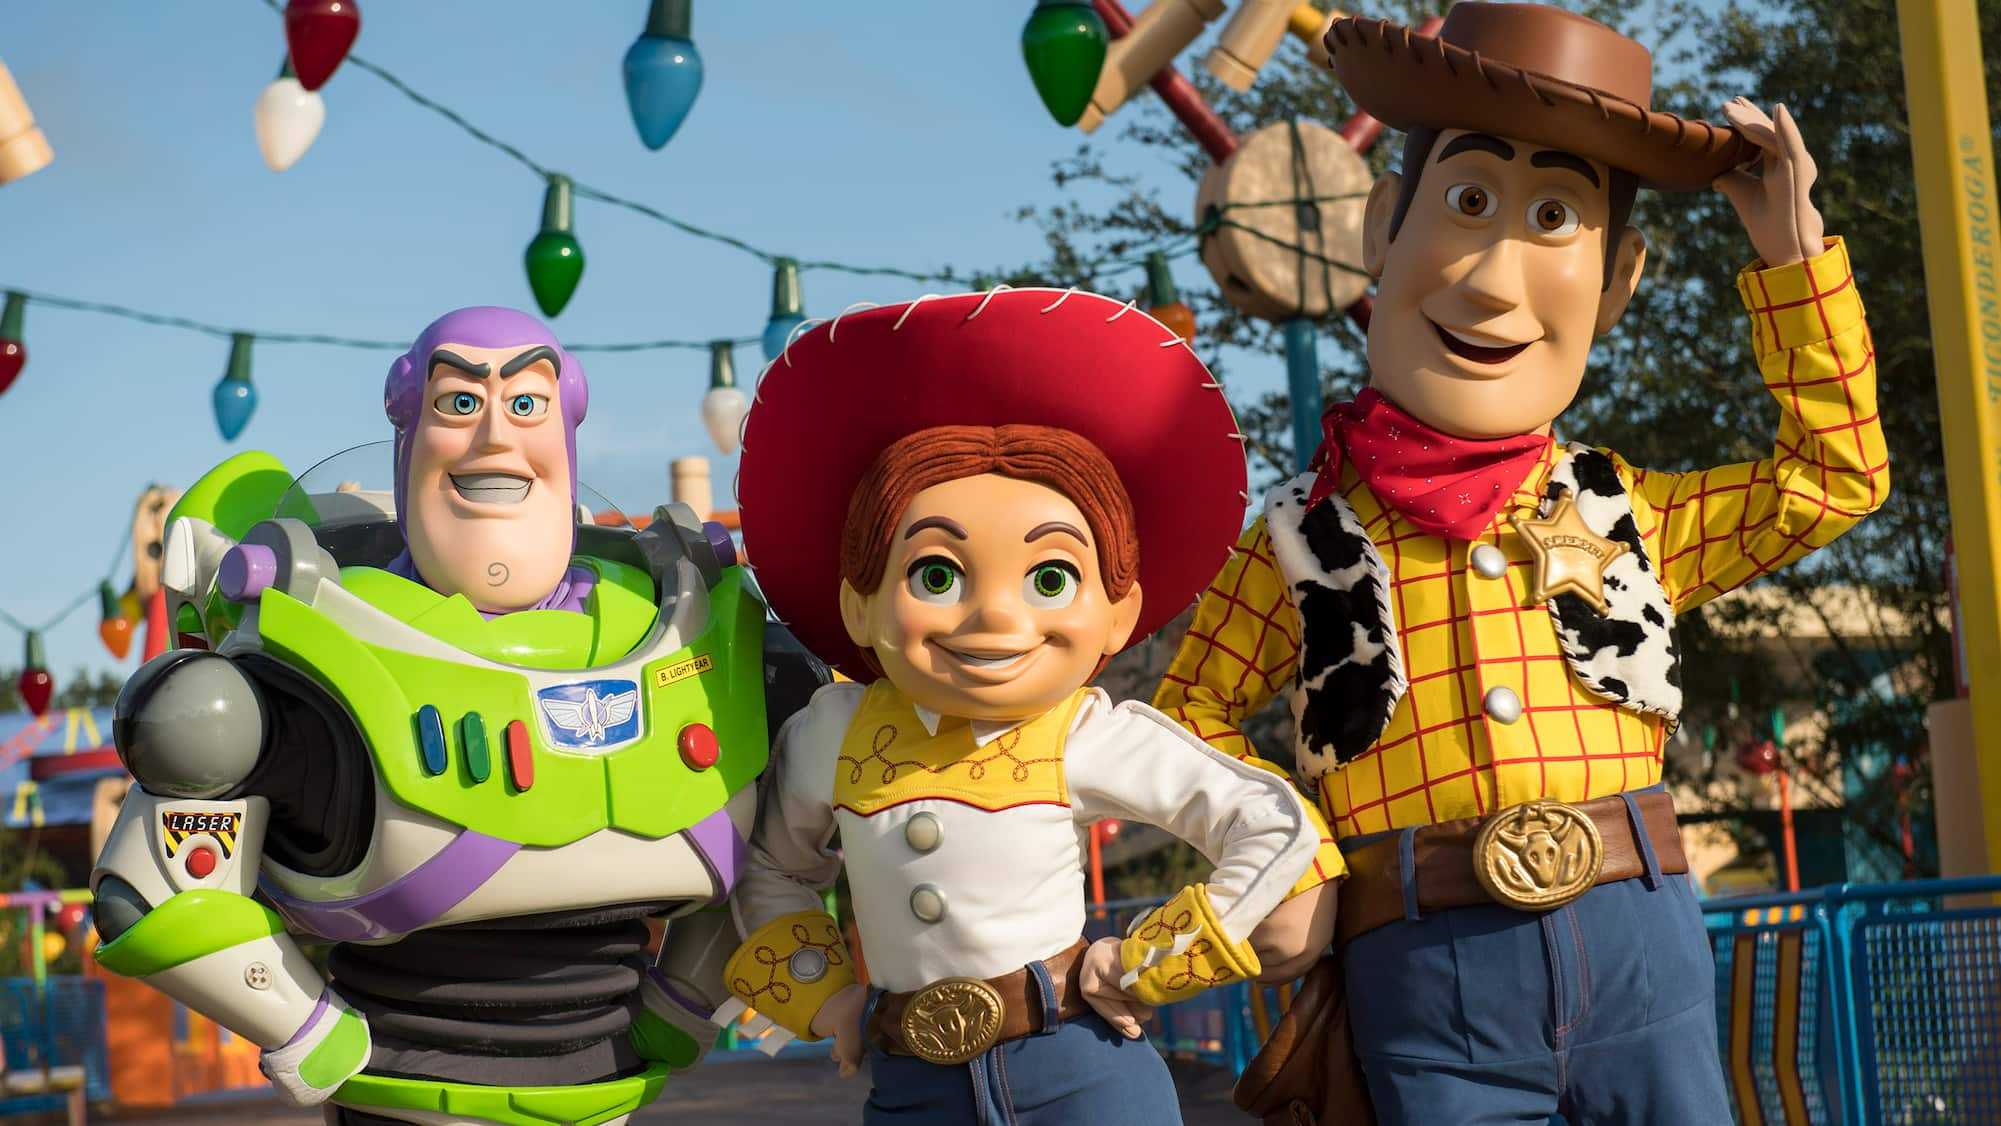 Buzz Lightyear, Jessie and Woody stand together on the streets of Toy Story Land